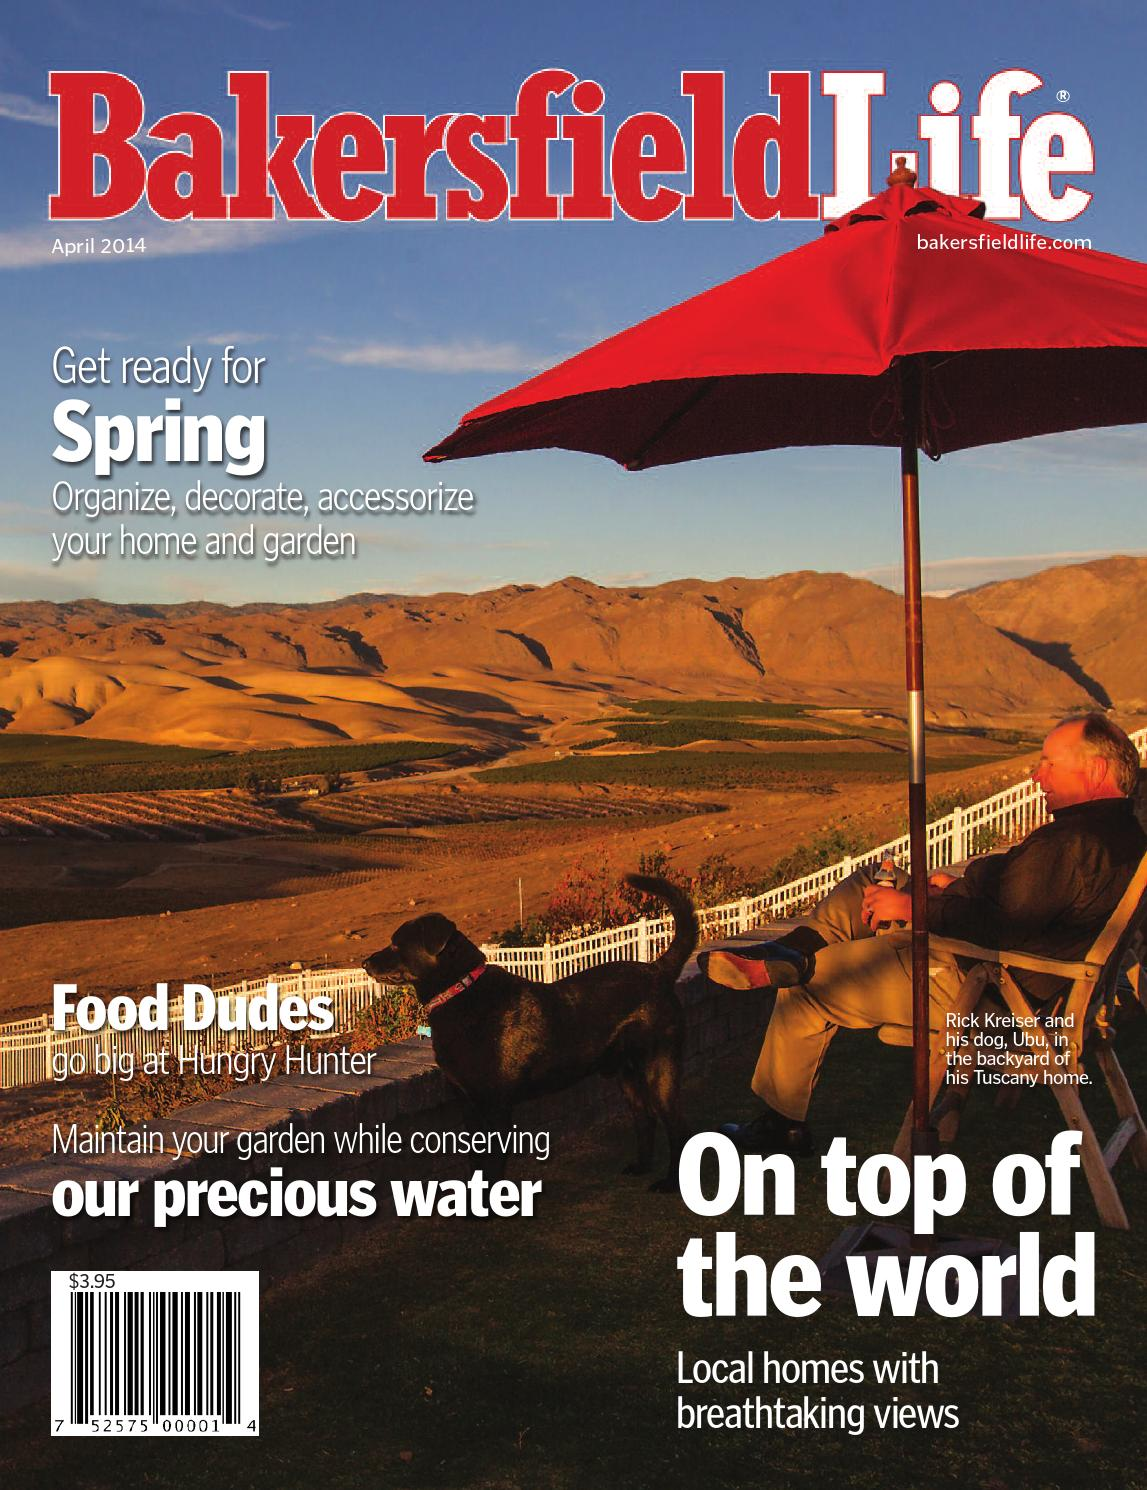 Bakersfield life magazine april 2014 by tbc media for Bakersfield home magazine